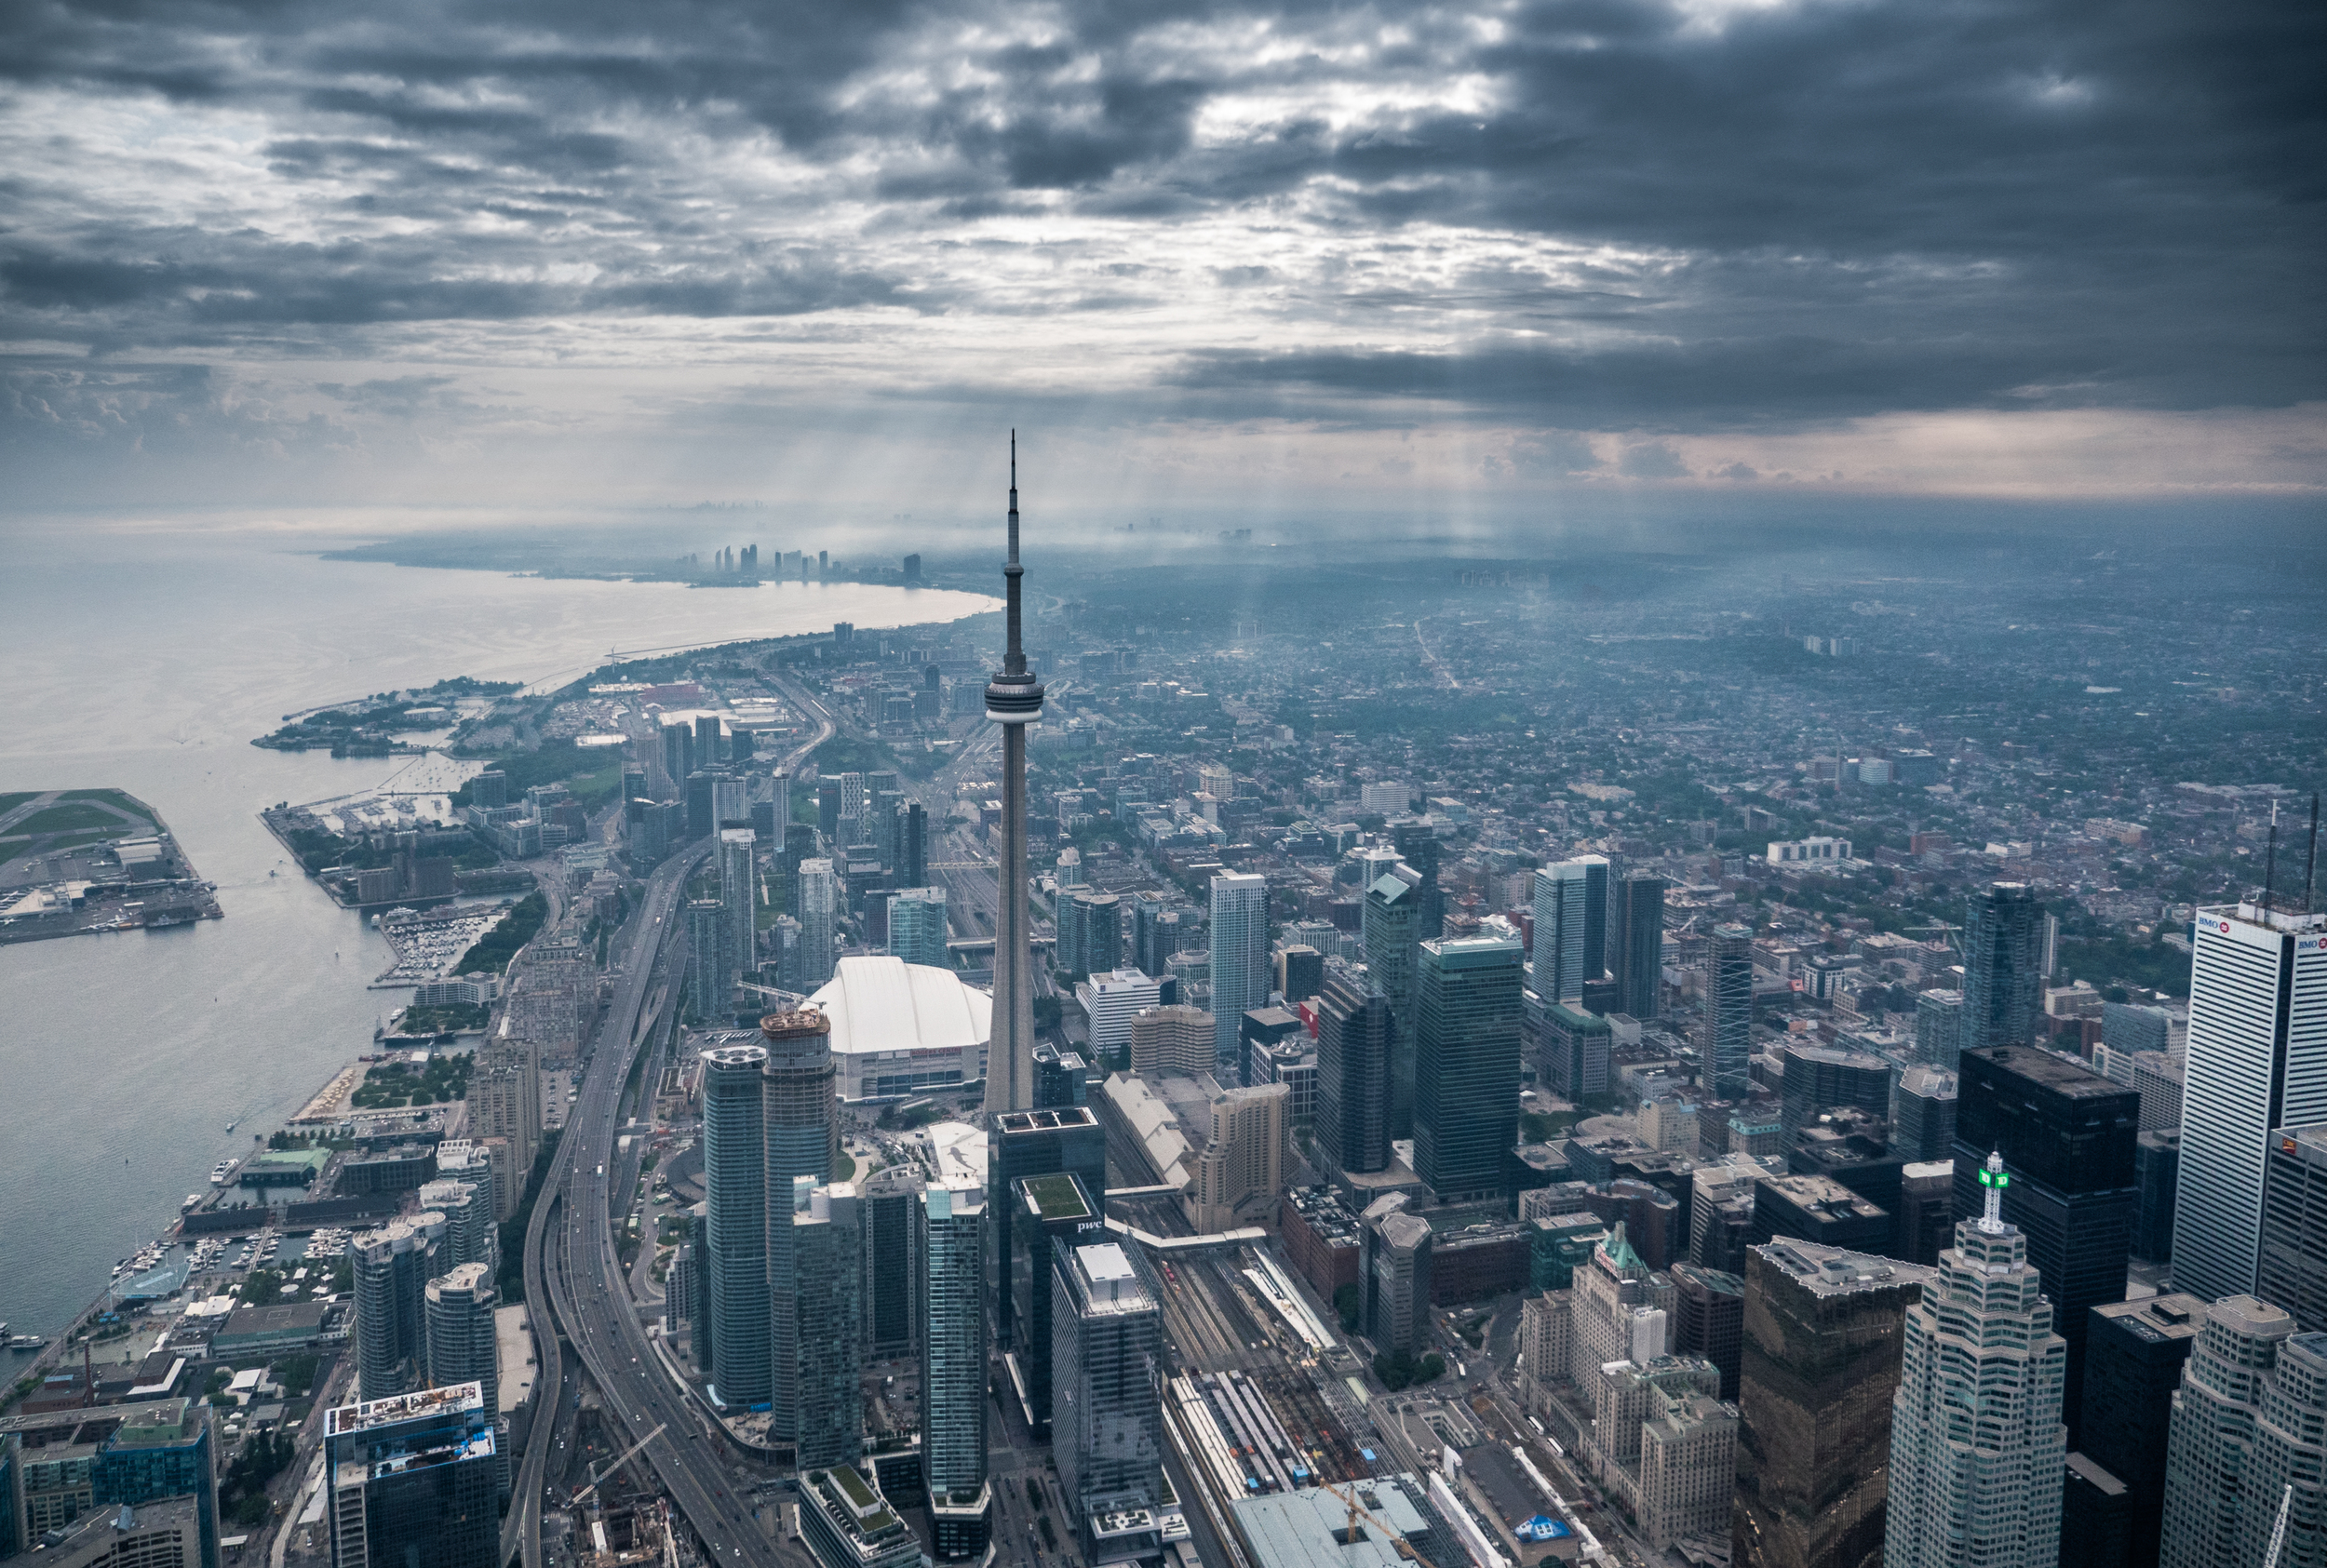 toronto_above_helicopter_bw_01.jpg